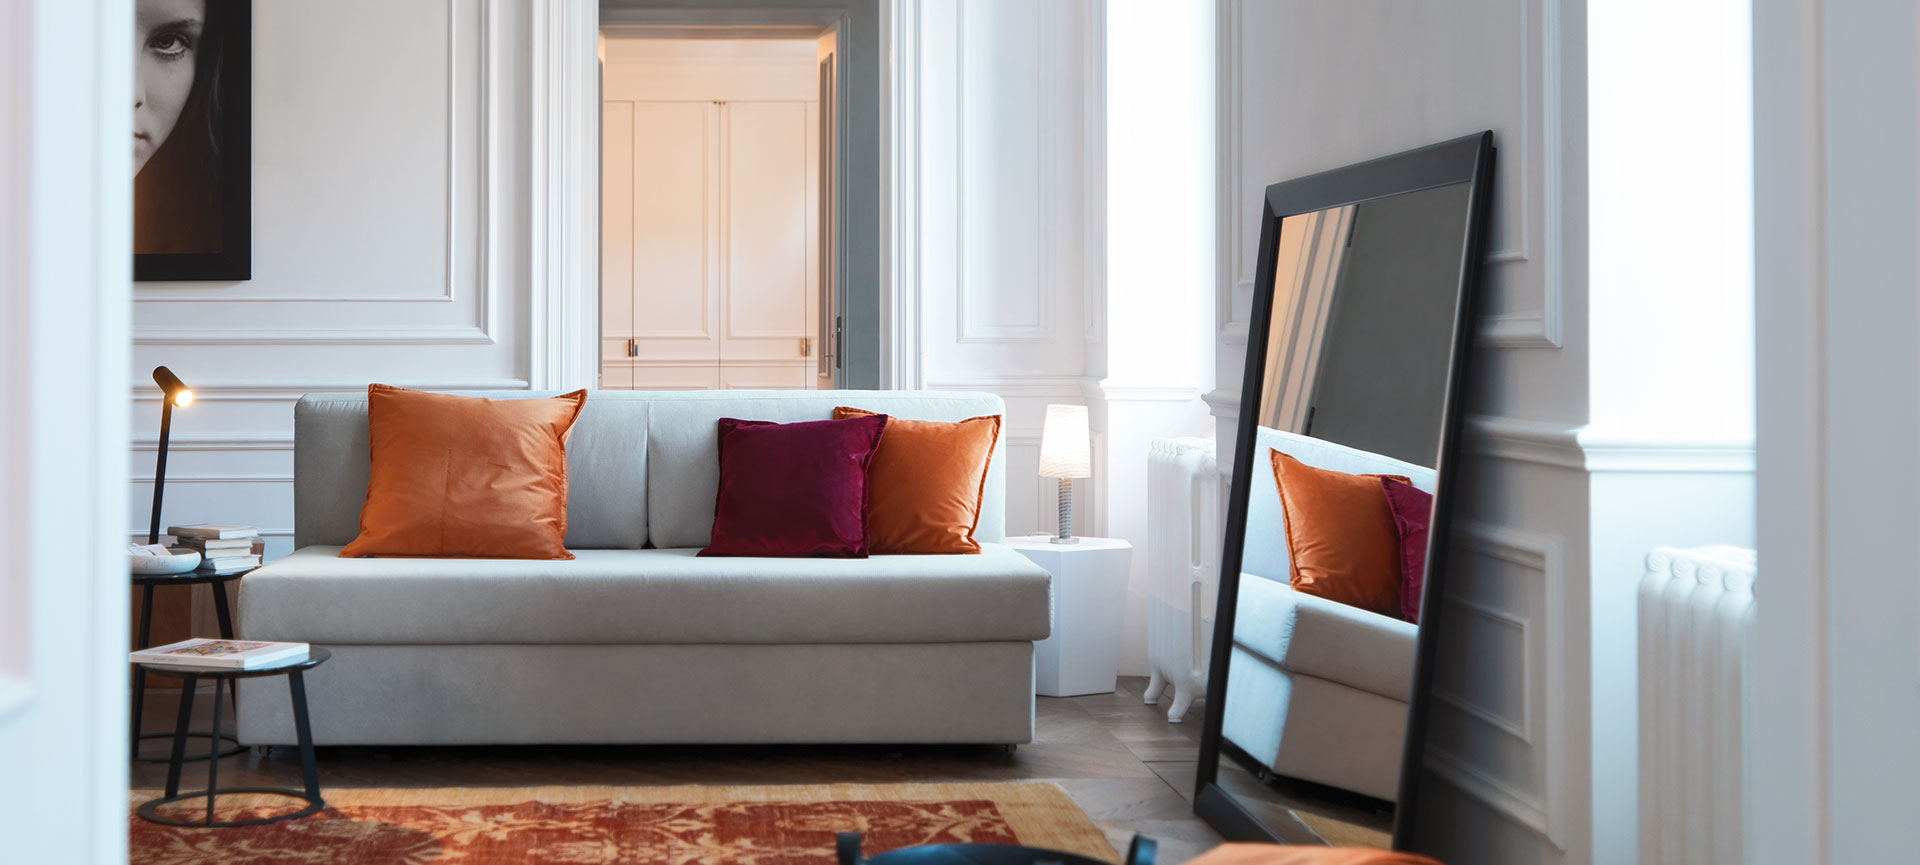 Living room with Vulcano sofa bed